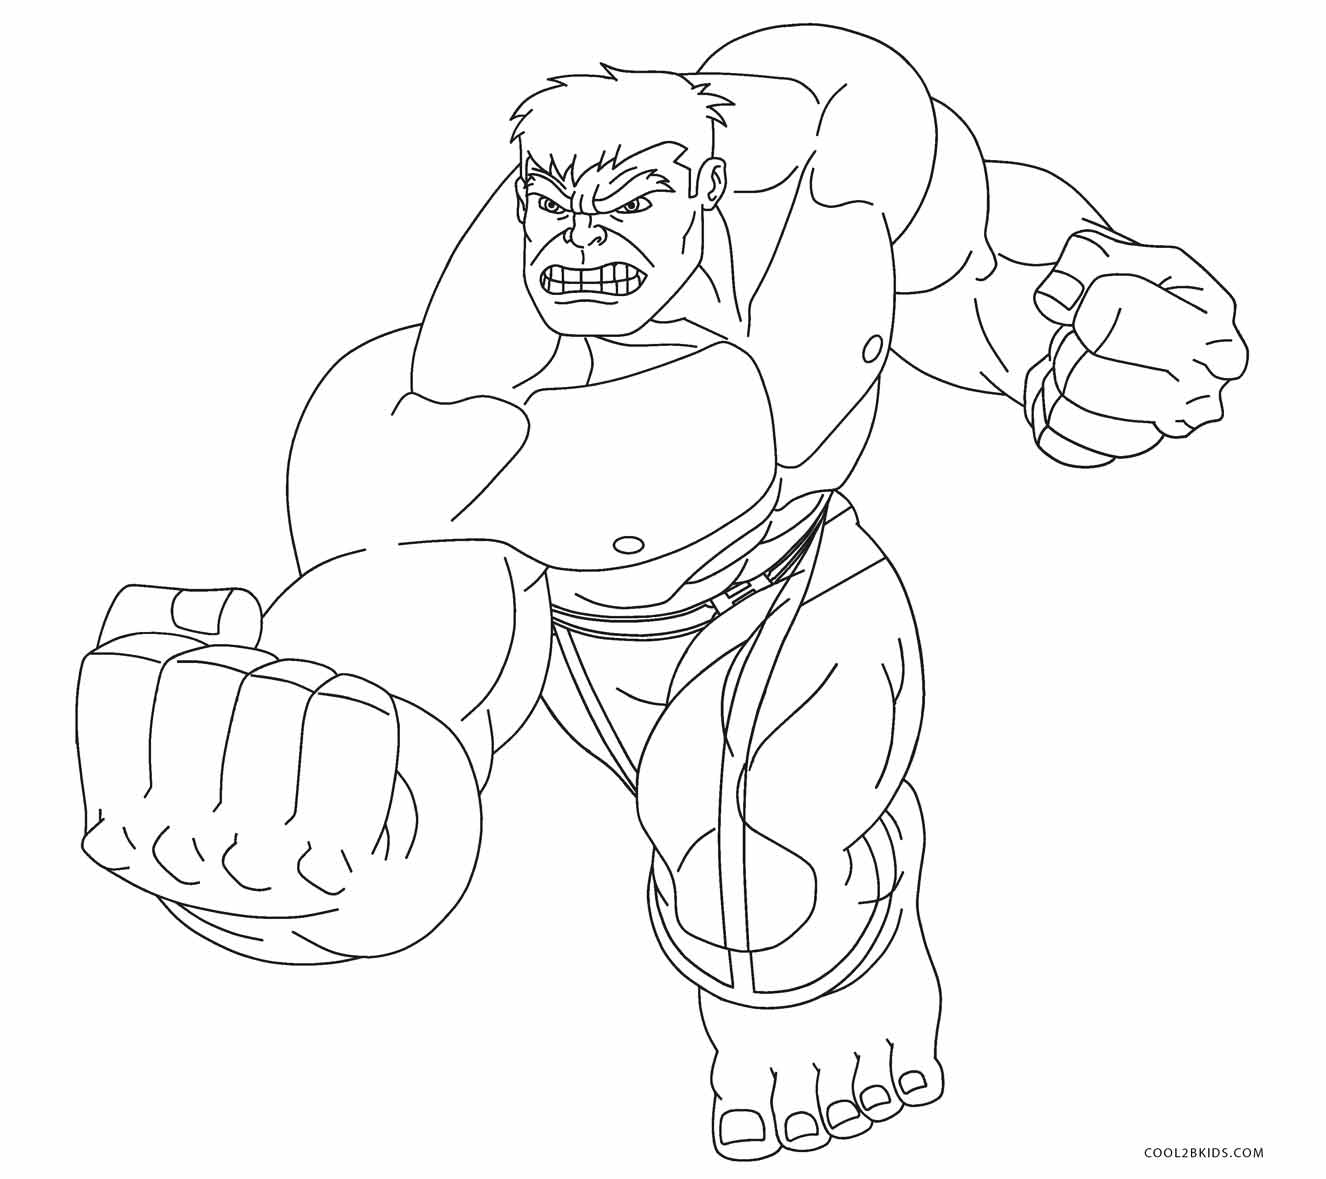 1326x1179 Free Printable Hulk Coloring Pages For Kids Cool2bKids